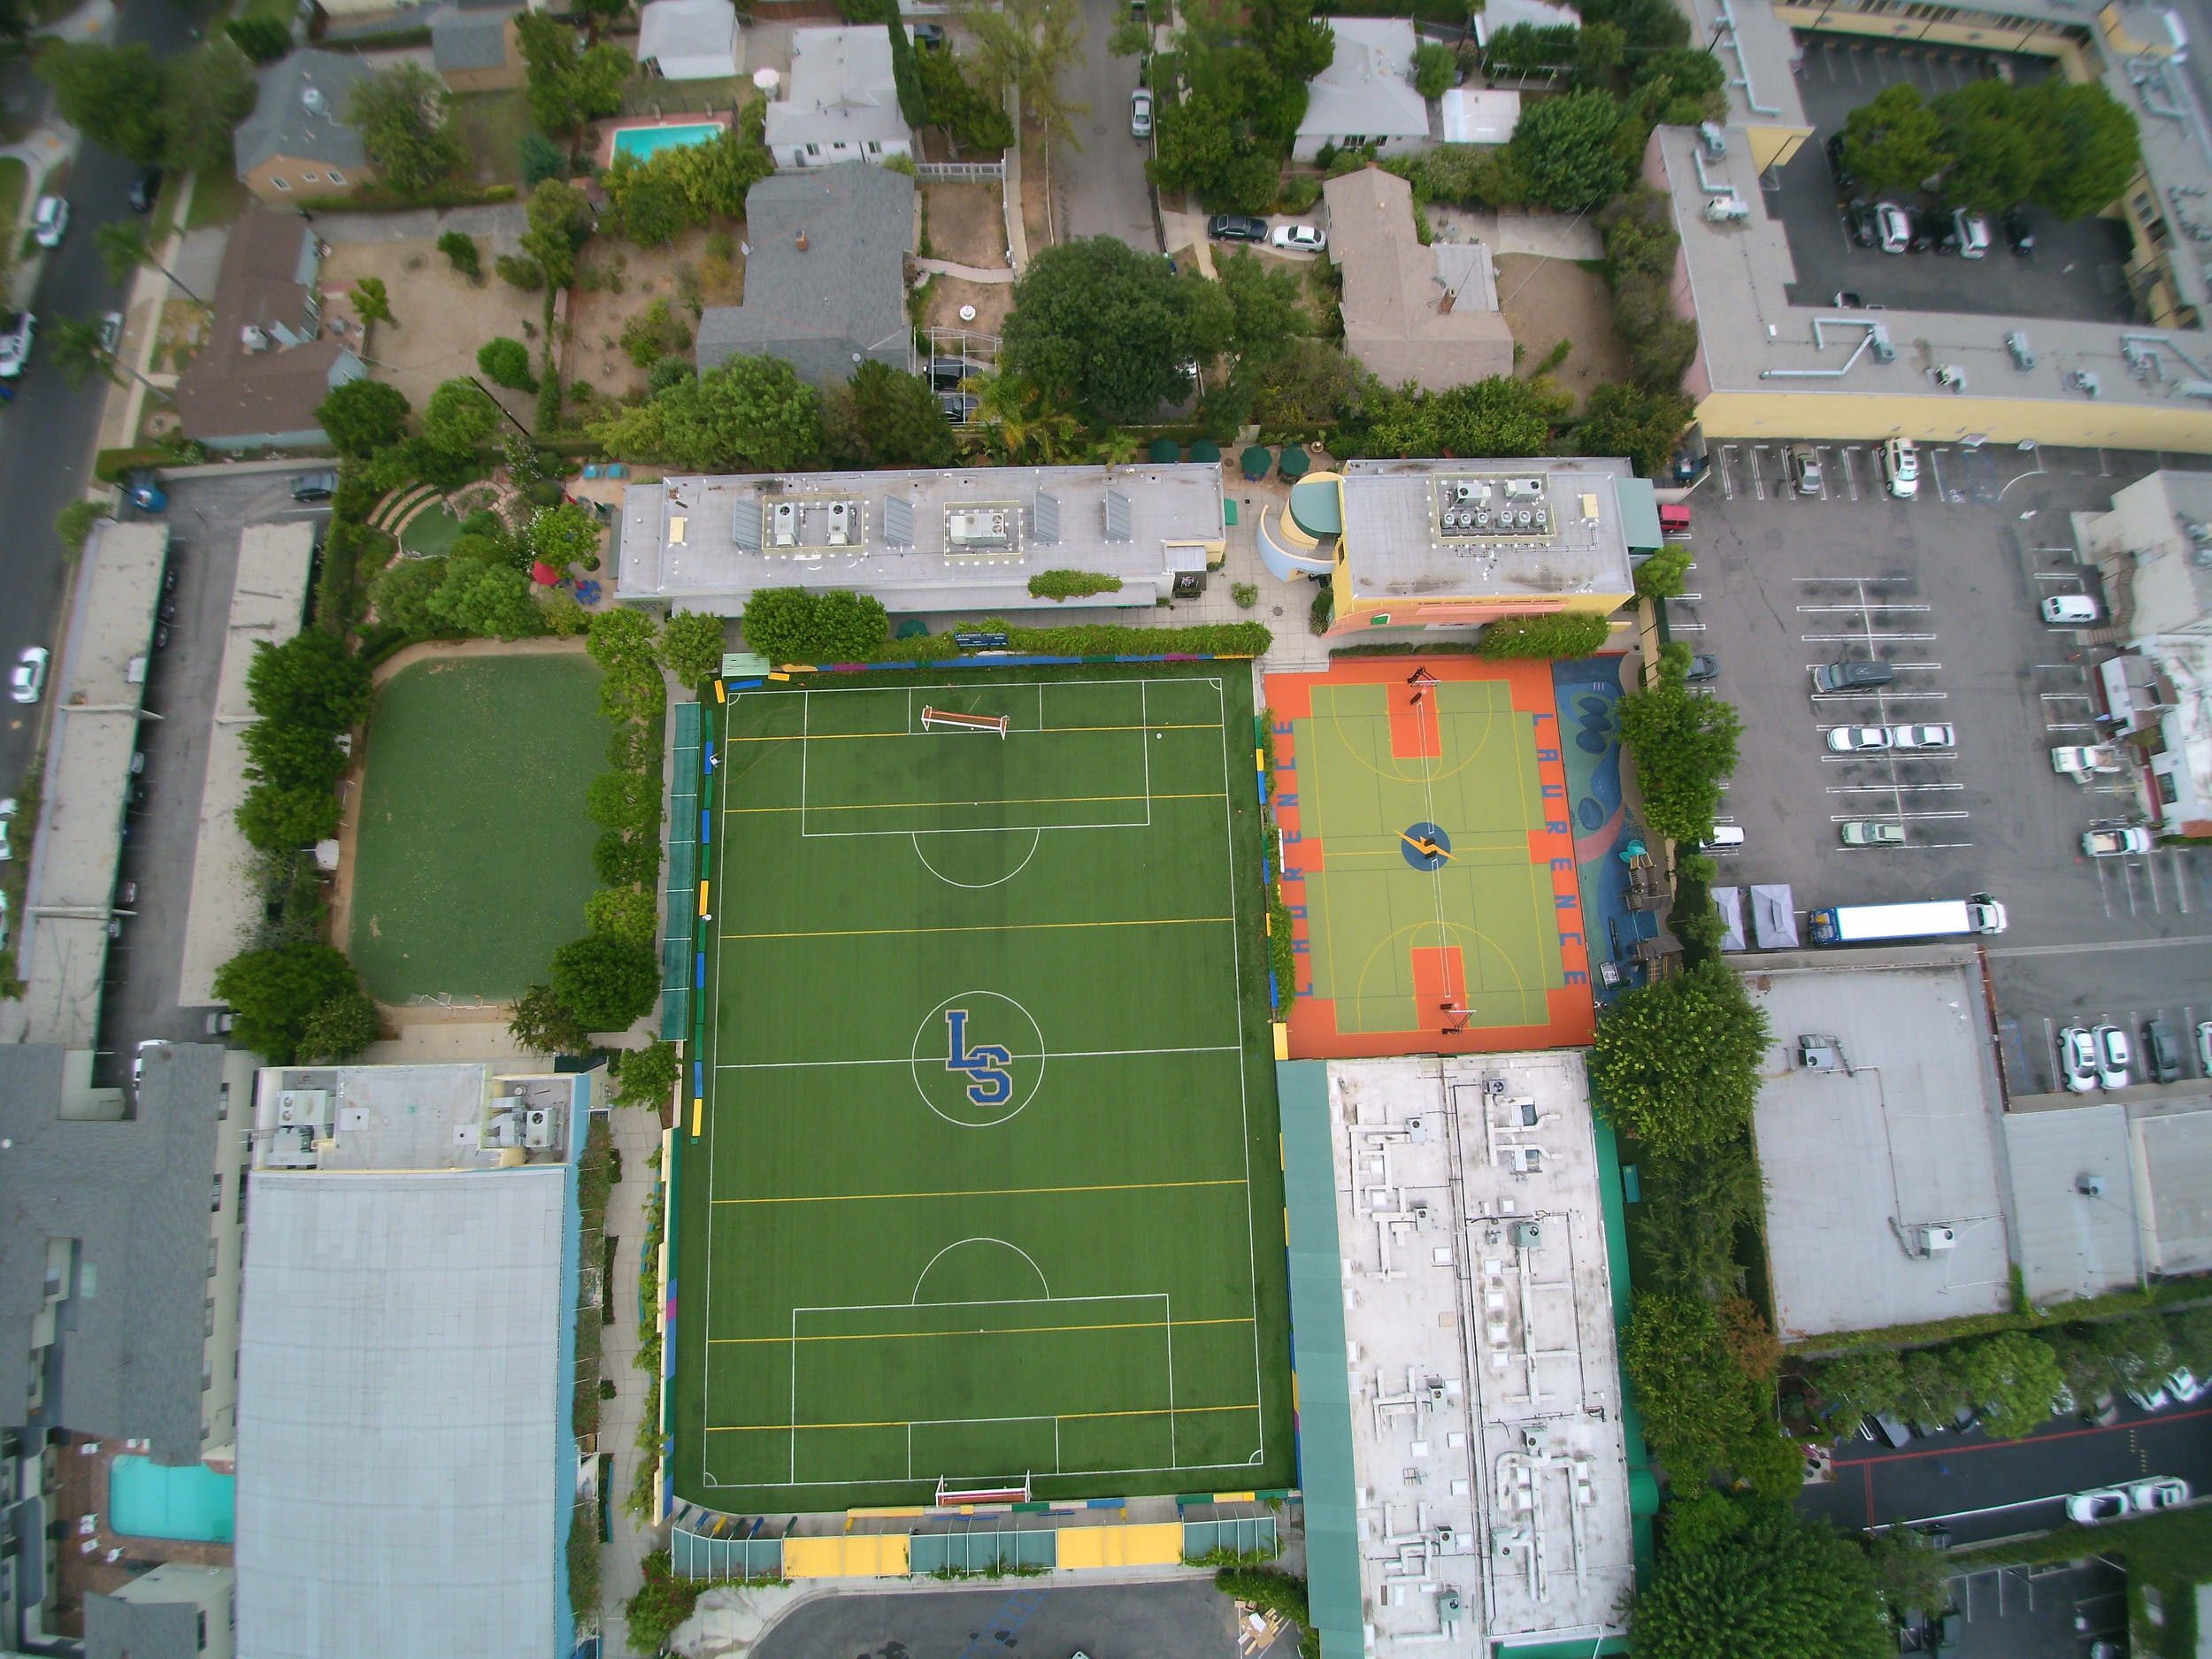 Synthetic grass by sport court